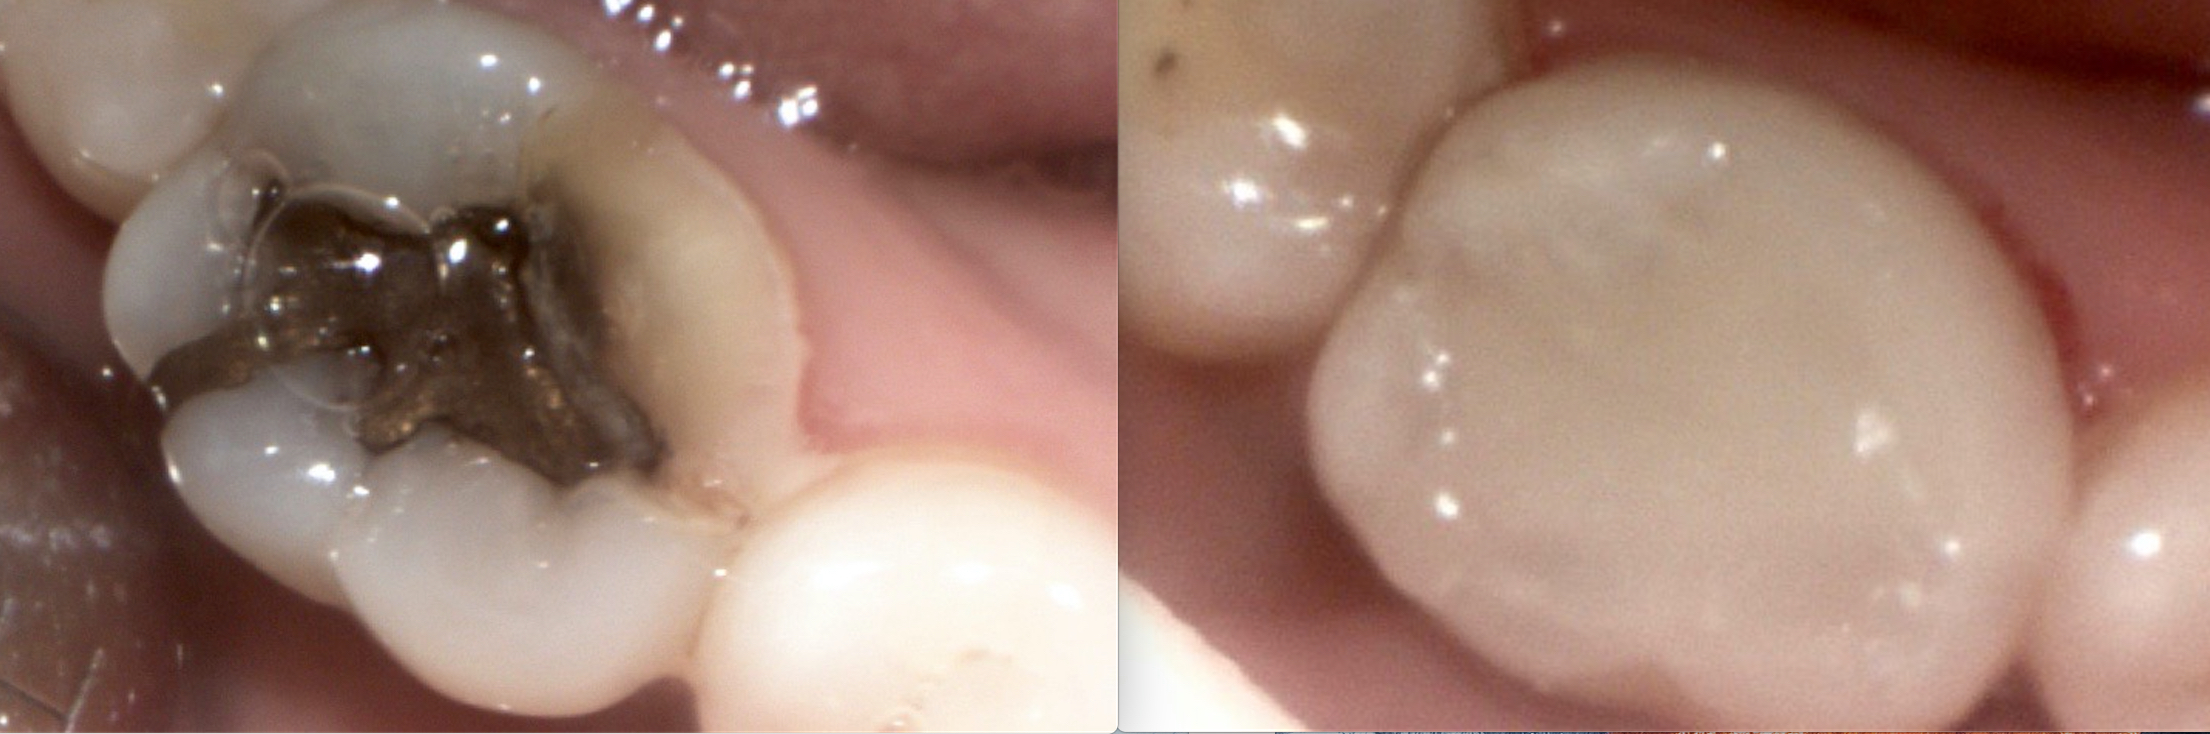 Can you believe these are the SAME TOOTH?! Wonderful results